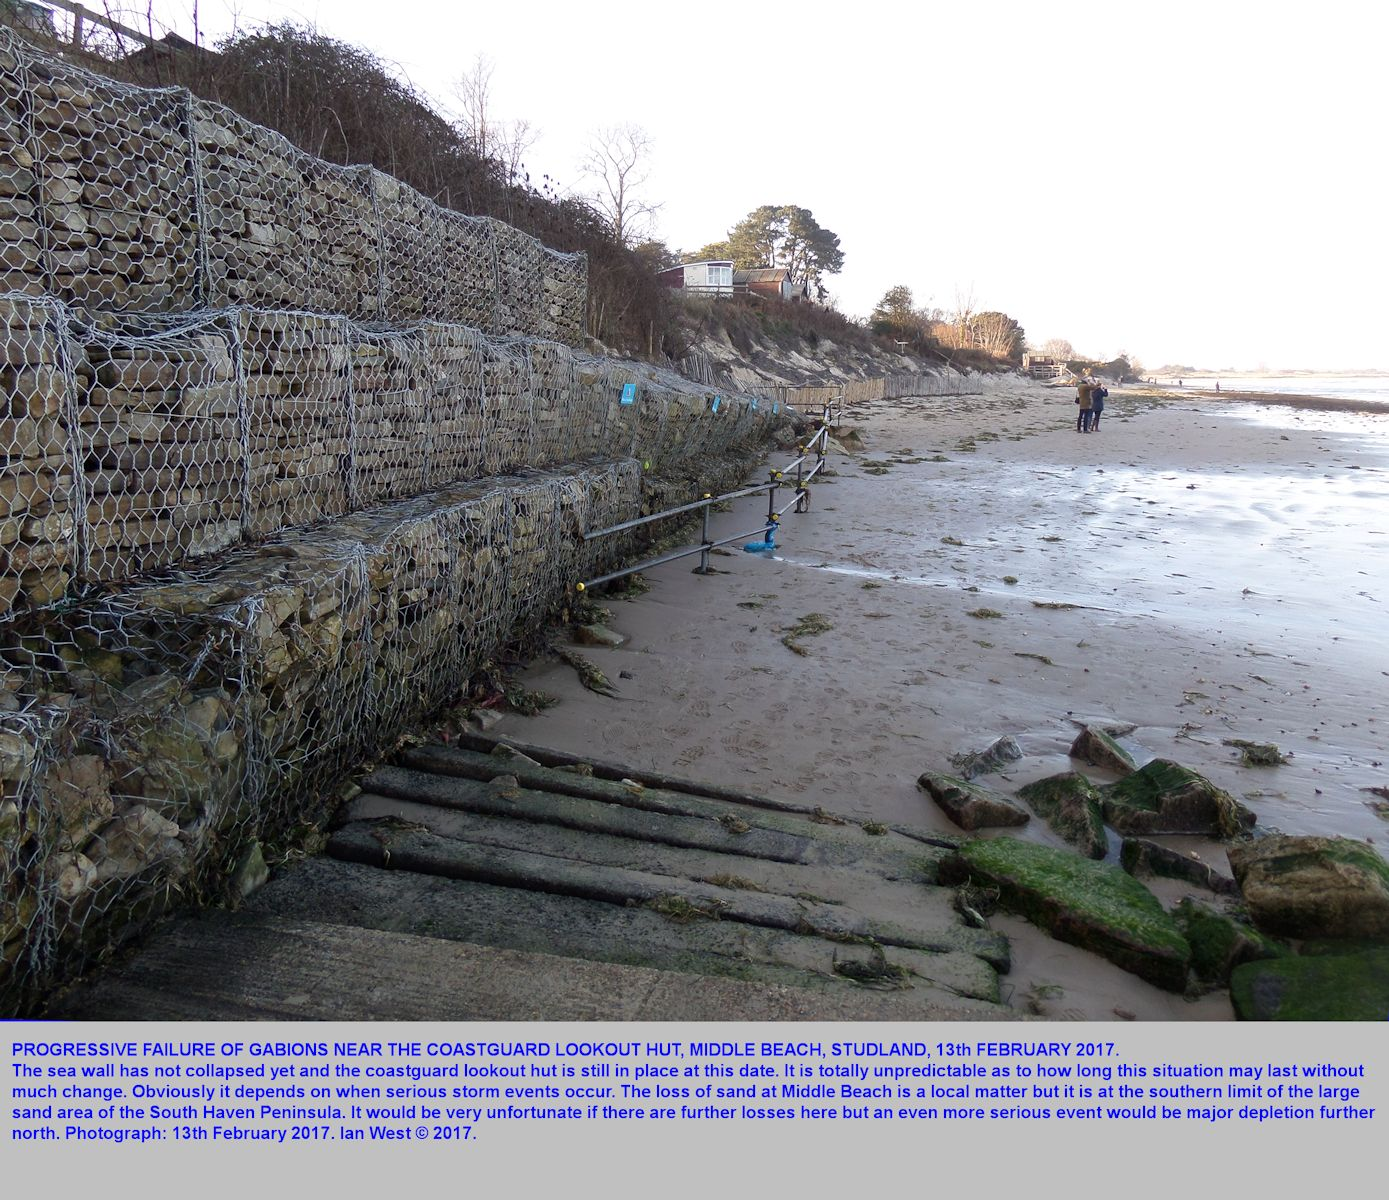 Some gabions at the northern part of Middle Beach, Studland, Dorset, with some instability and some potential for collapse, 13th February 2017